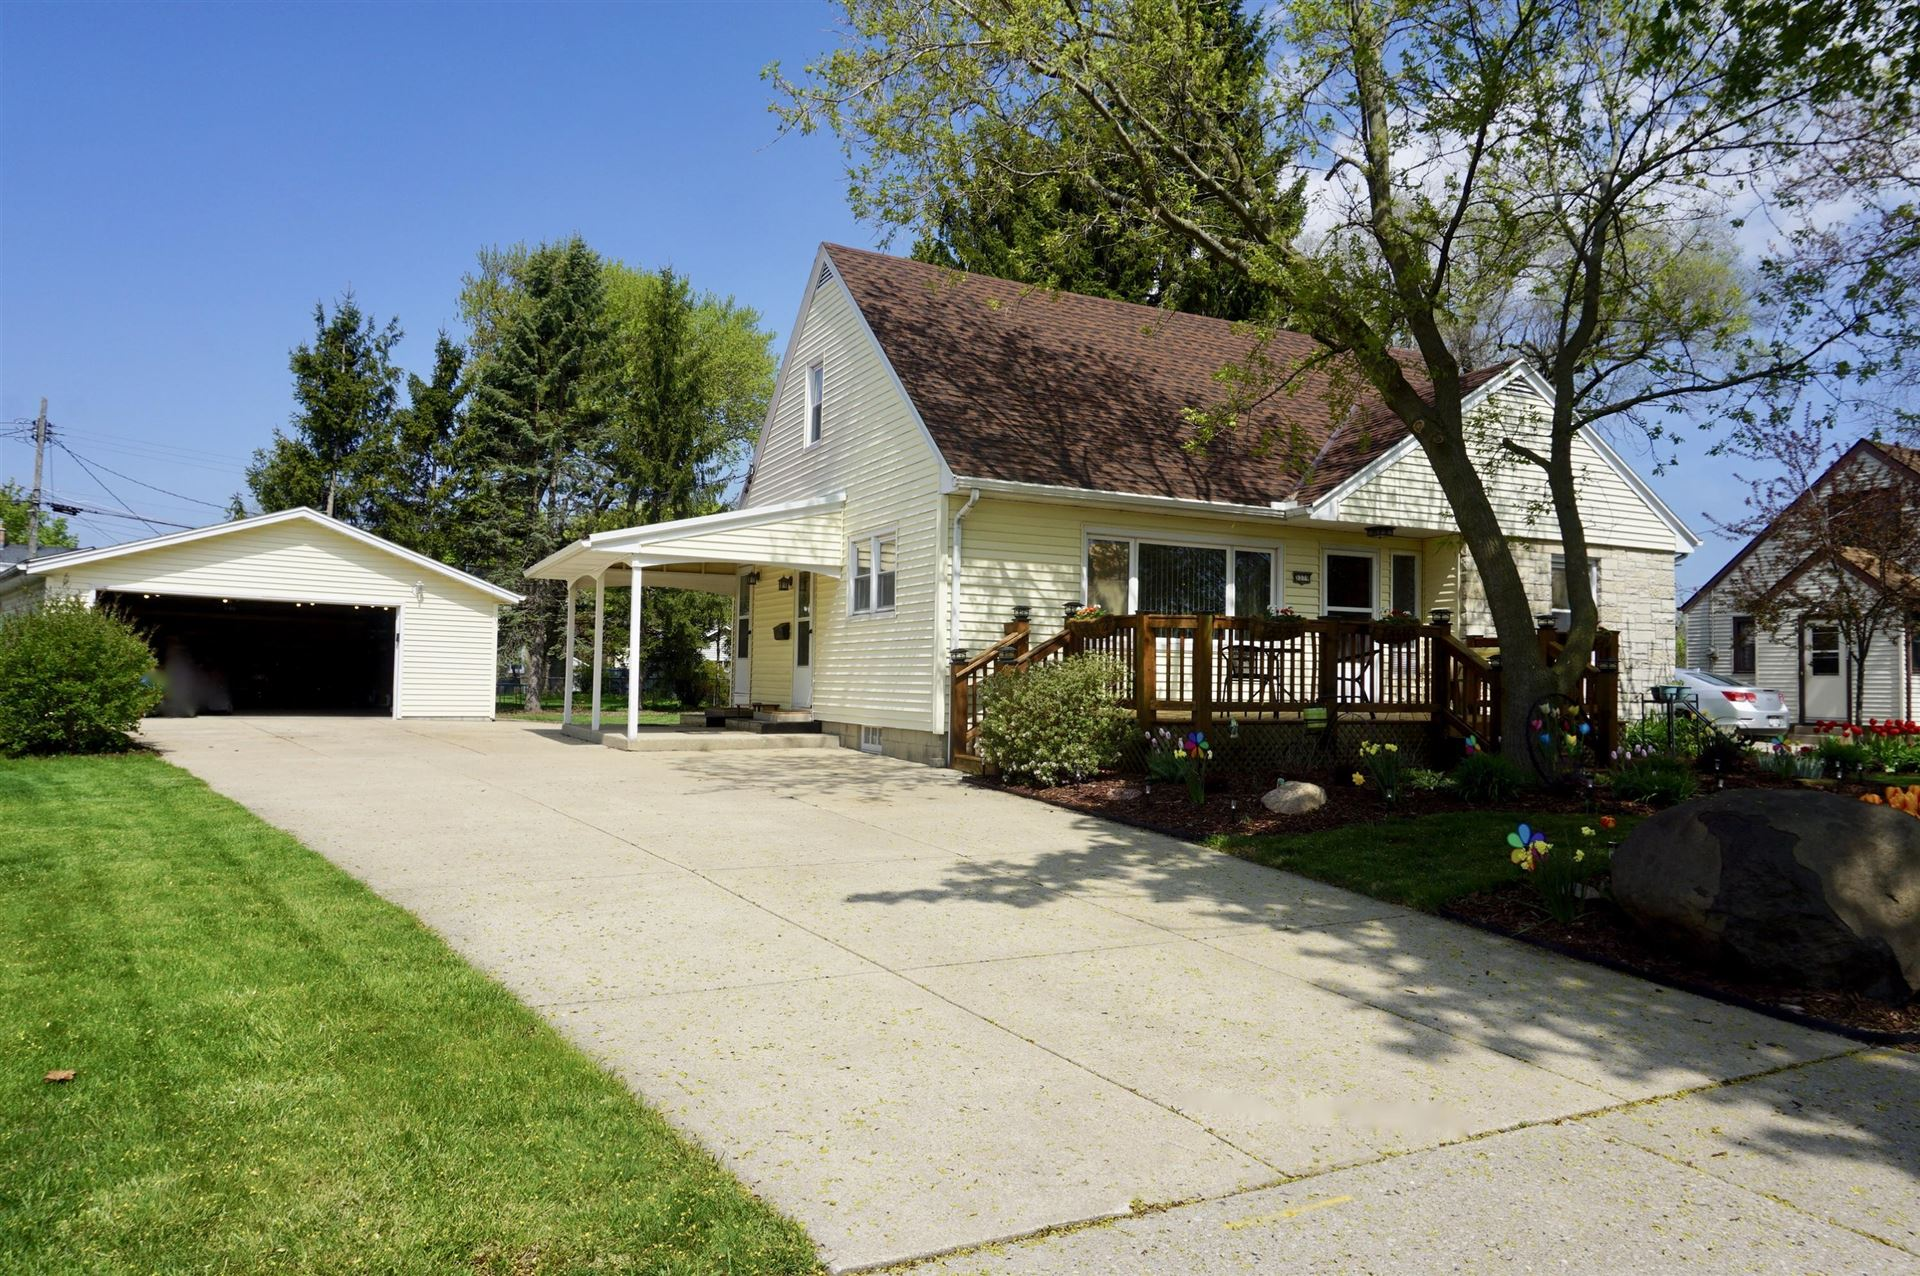 3379 S 64th St, Milwaukee, WI 53219 - #: 1689348